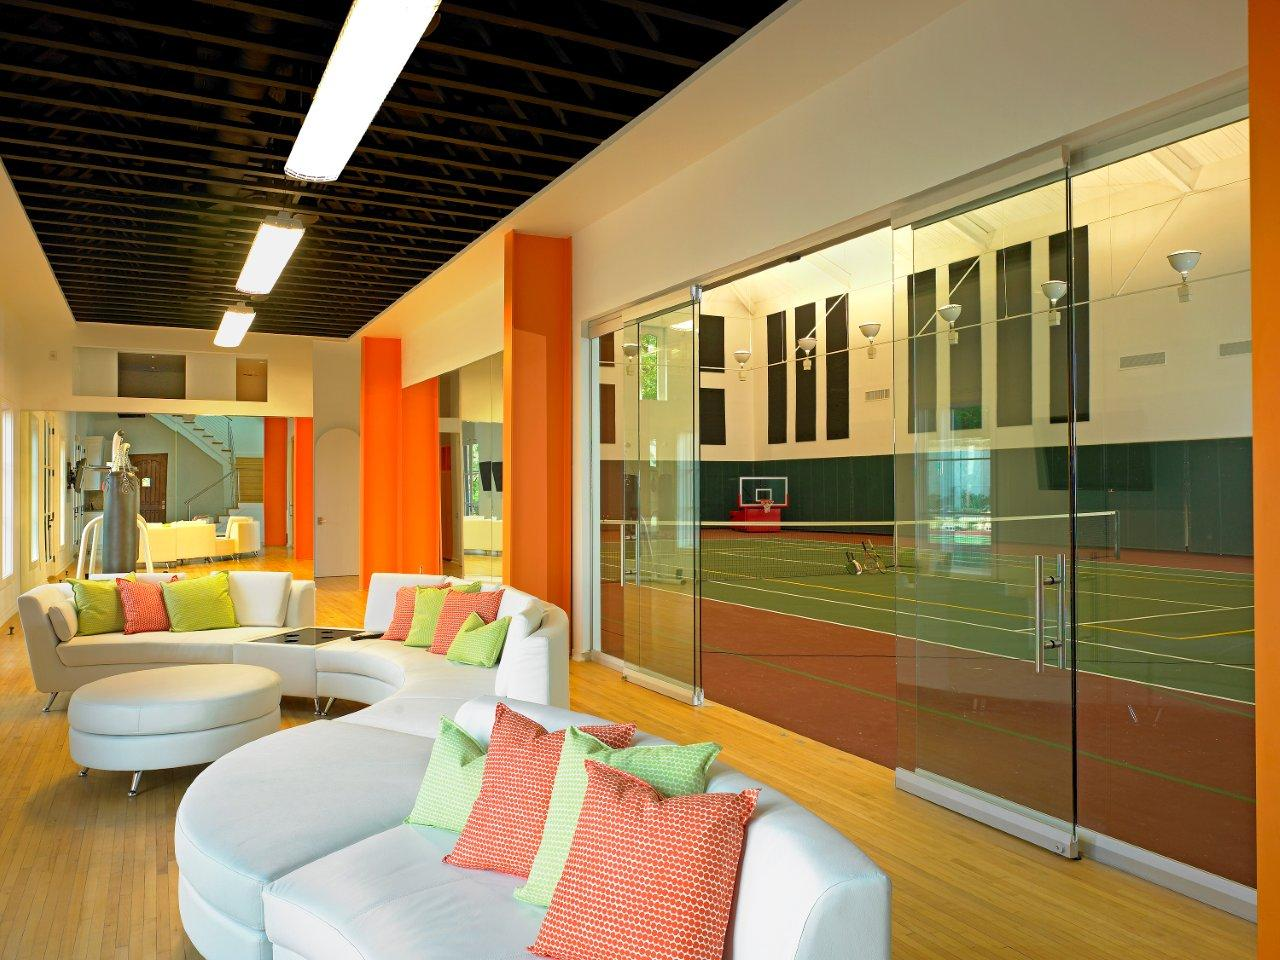 Indoor Tennis Courts Dallas - Home is Best Place to Return